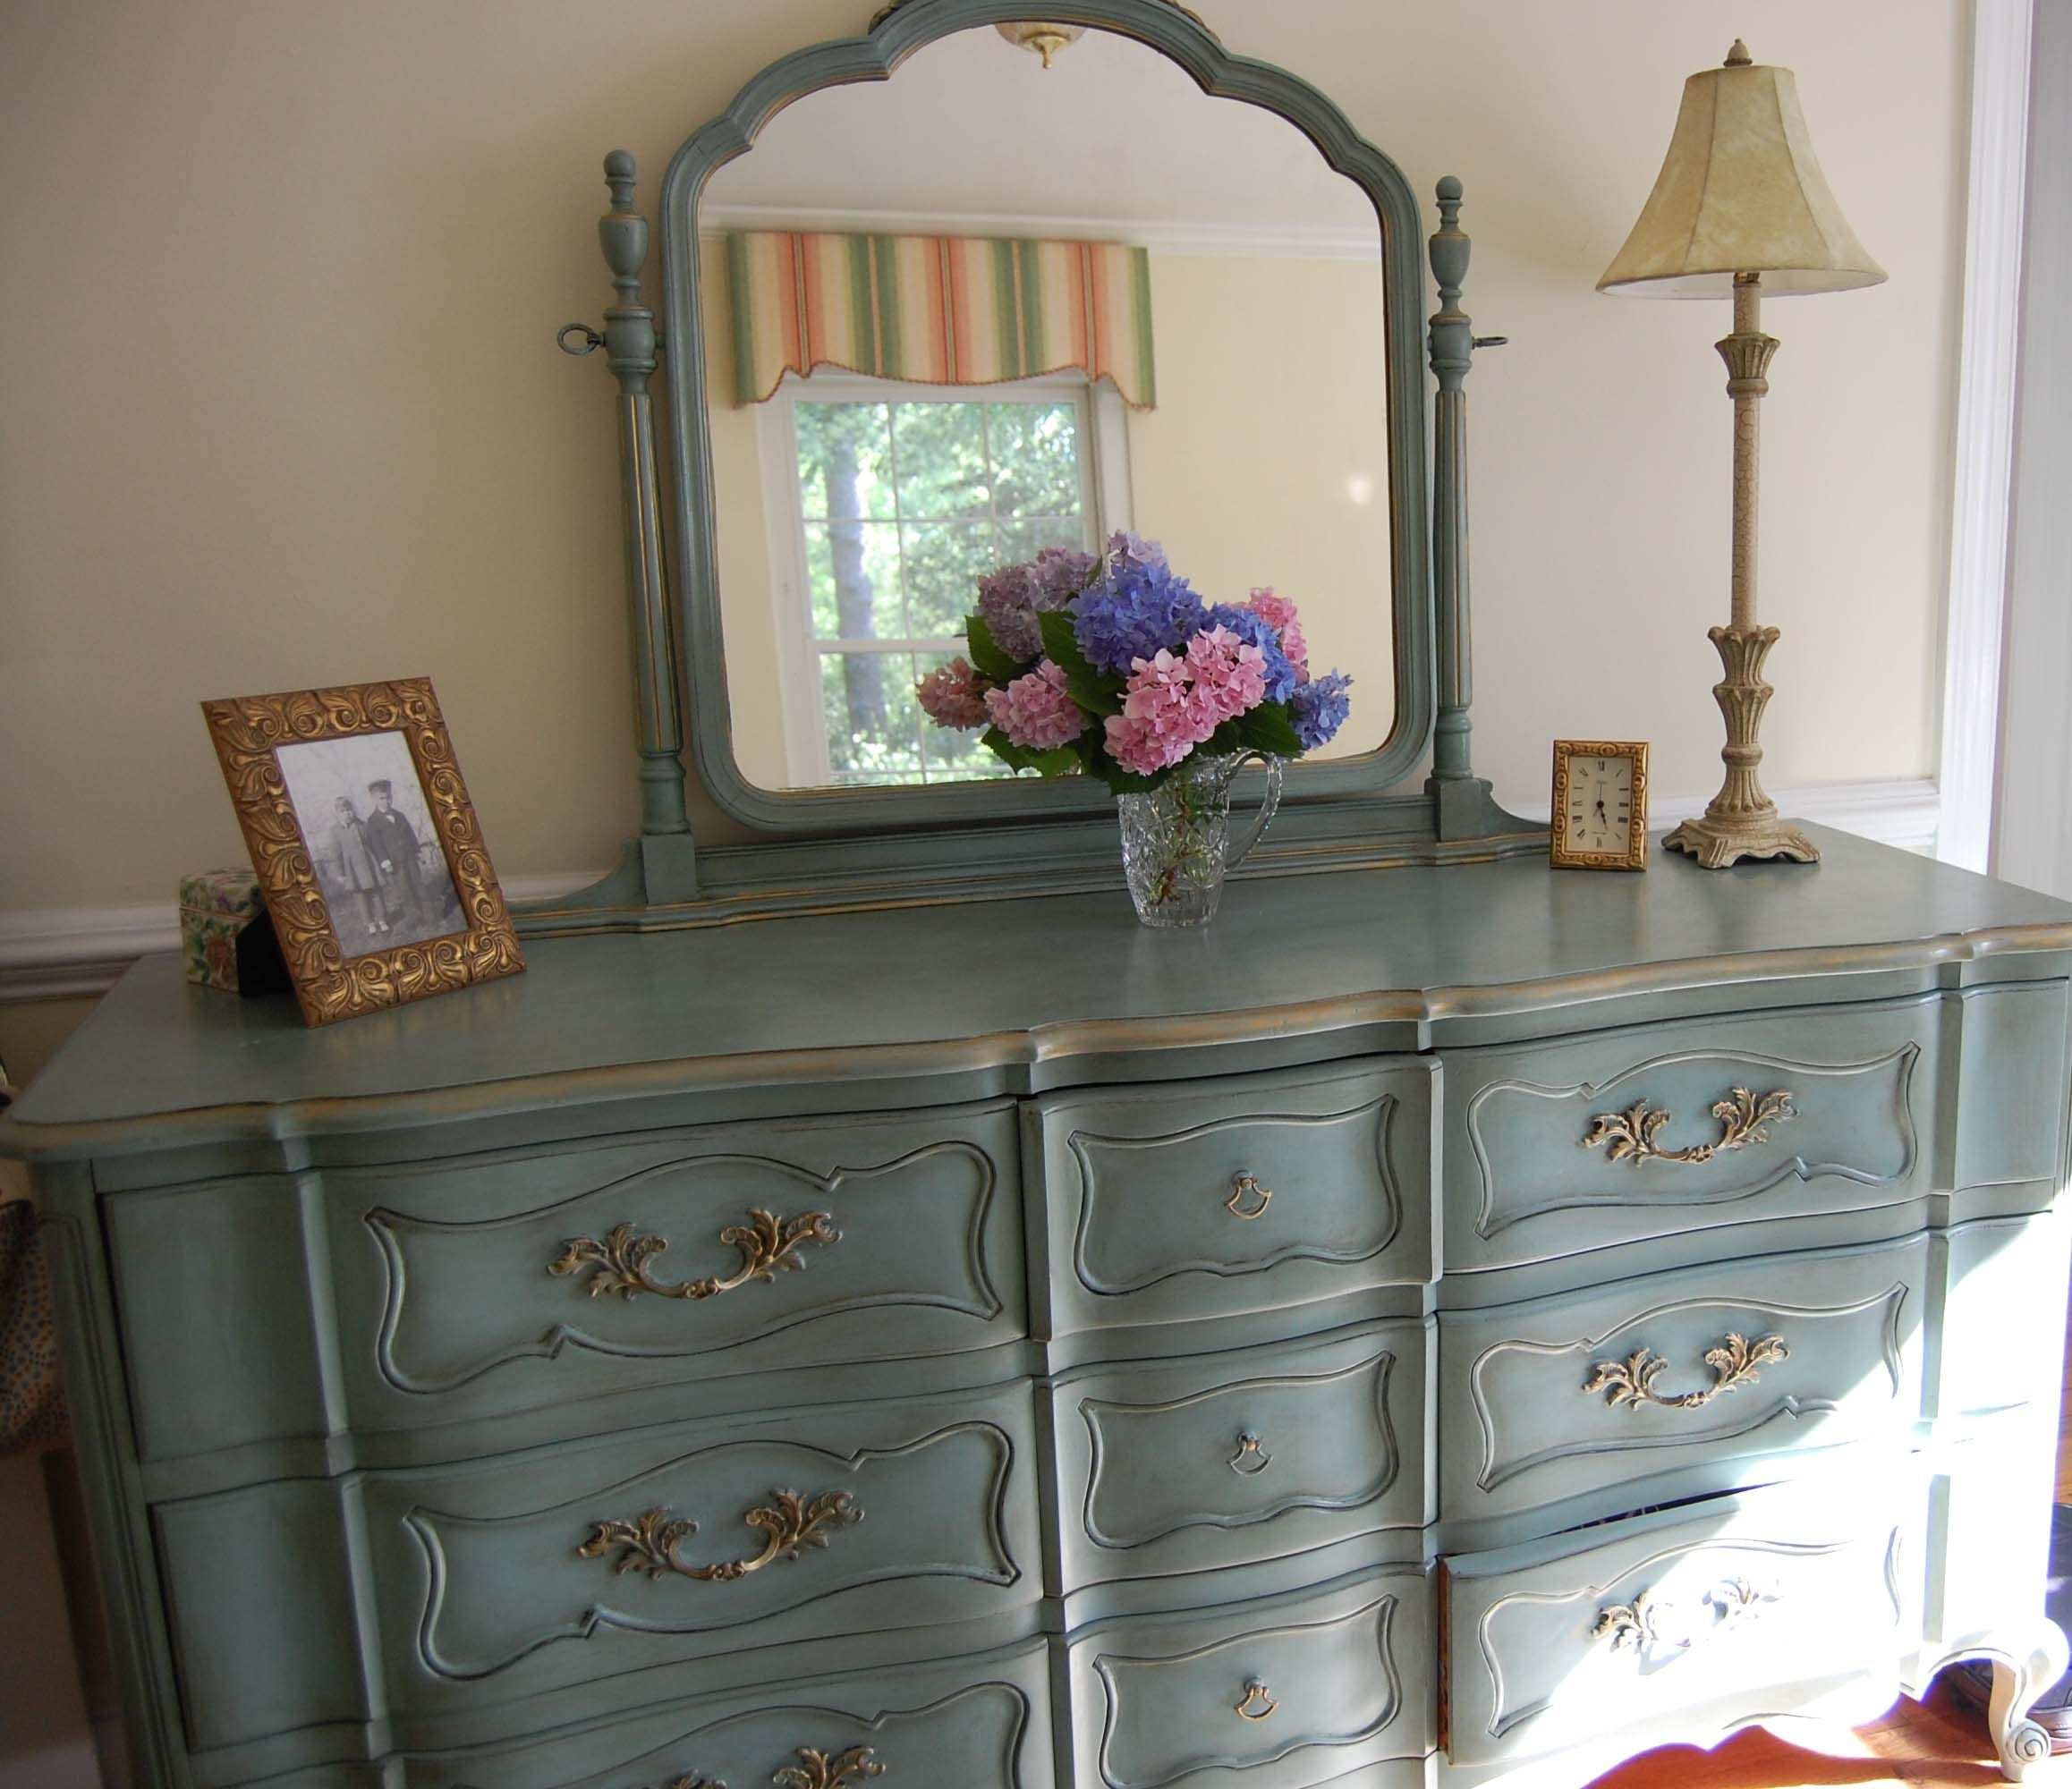 Mirrored Bedroom Dresser Painted This Bedroom Dresser Found At A Local Used Furniture Store